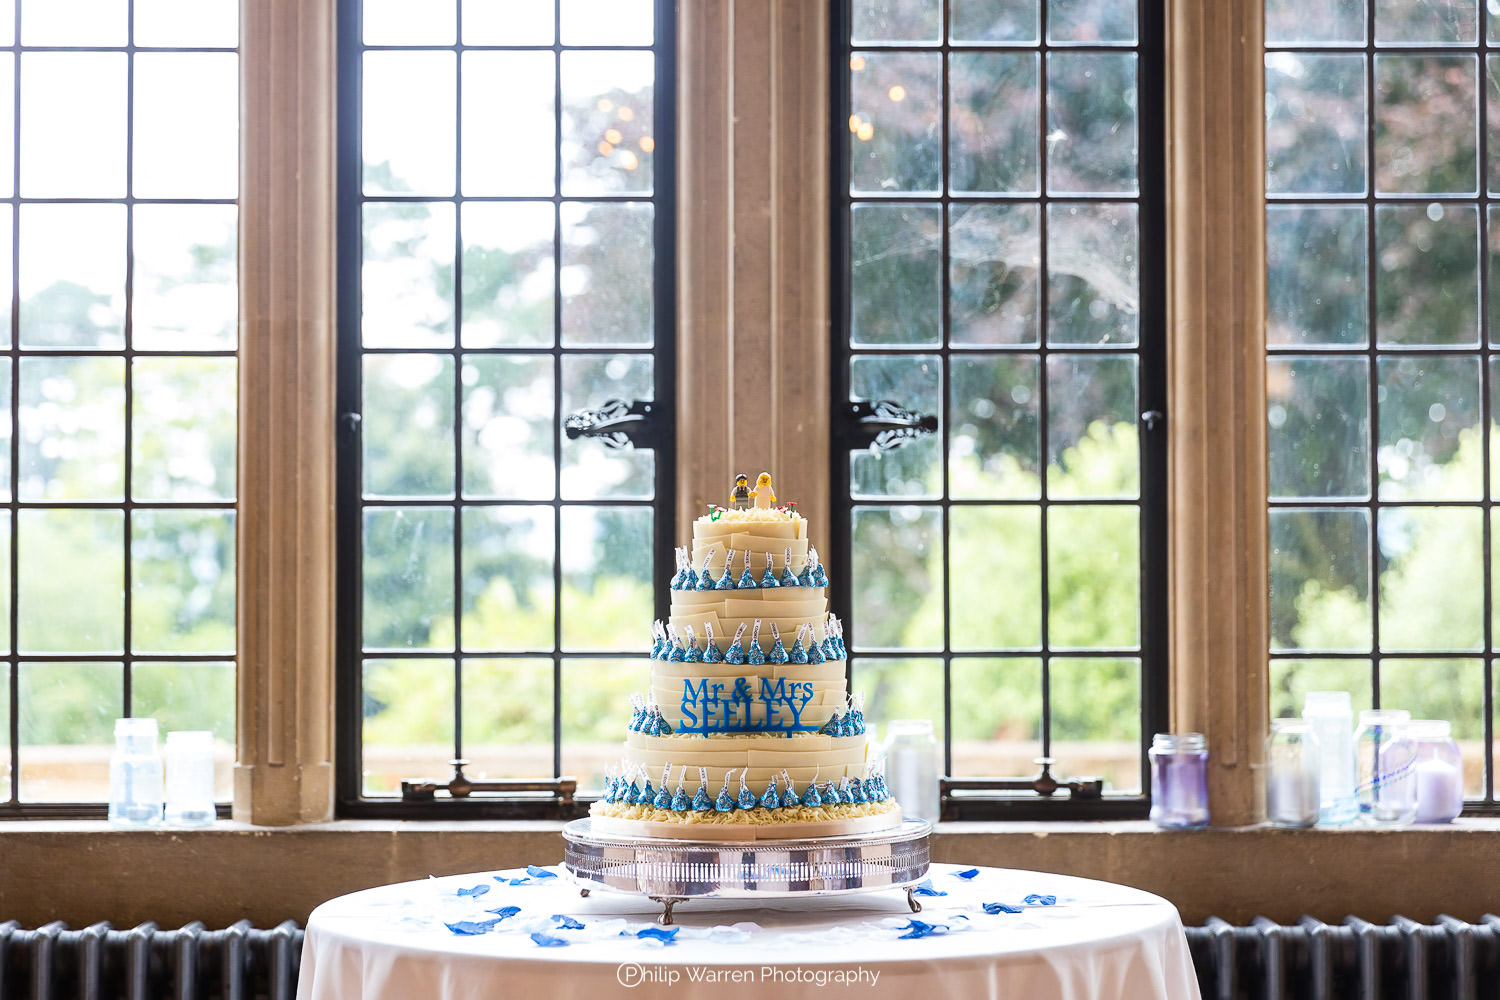 white and blue wedding cake on table in window